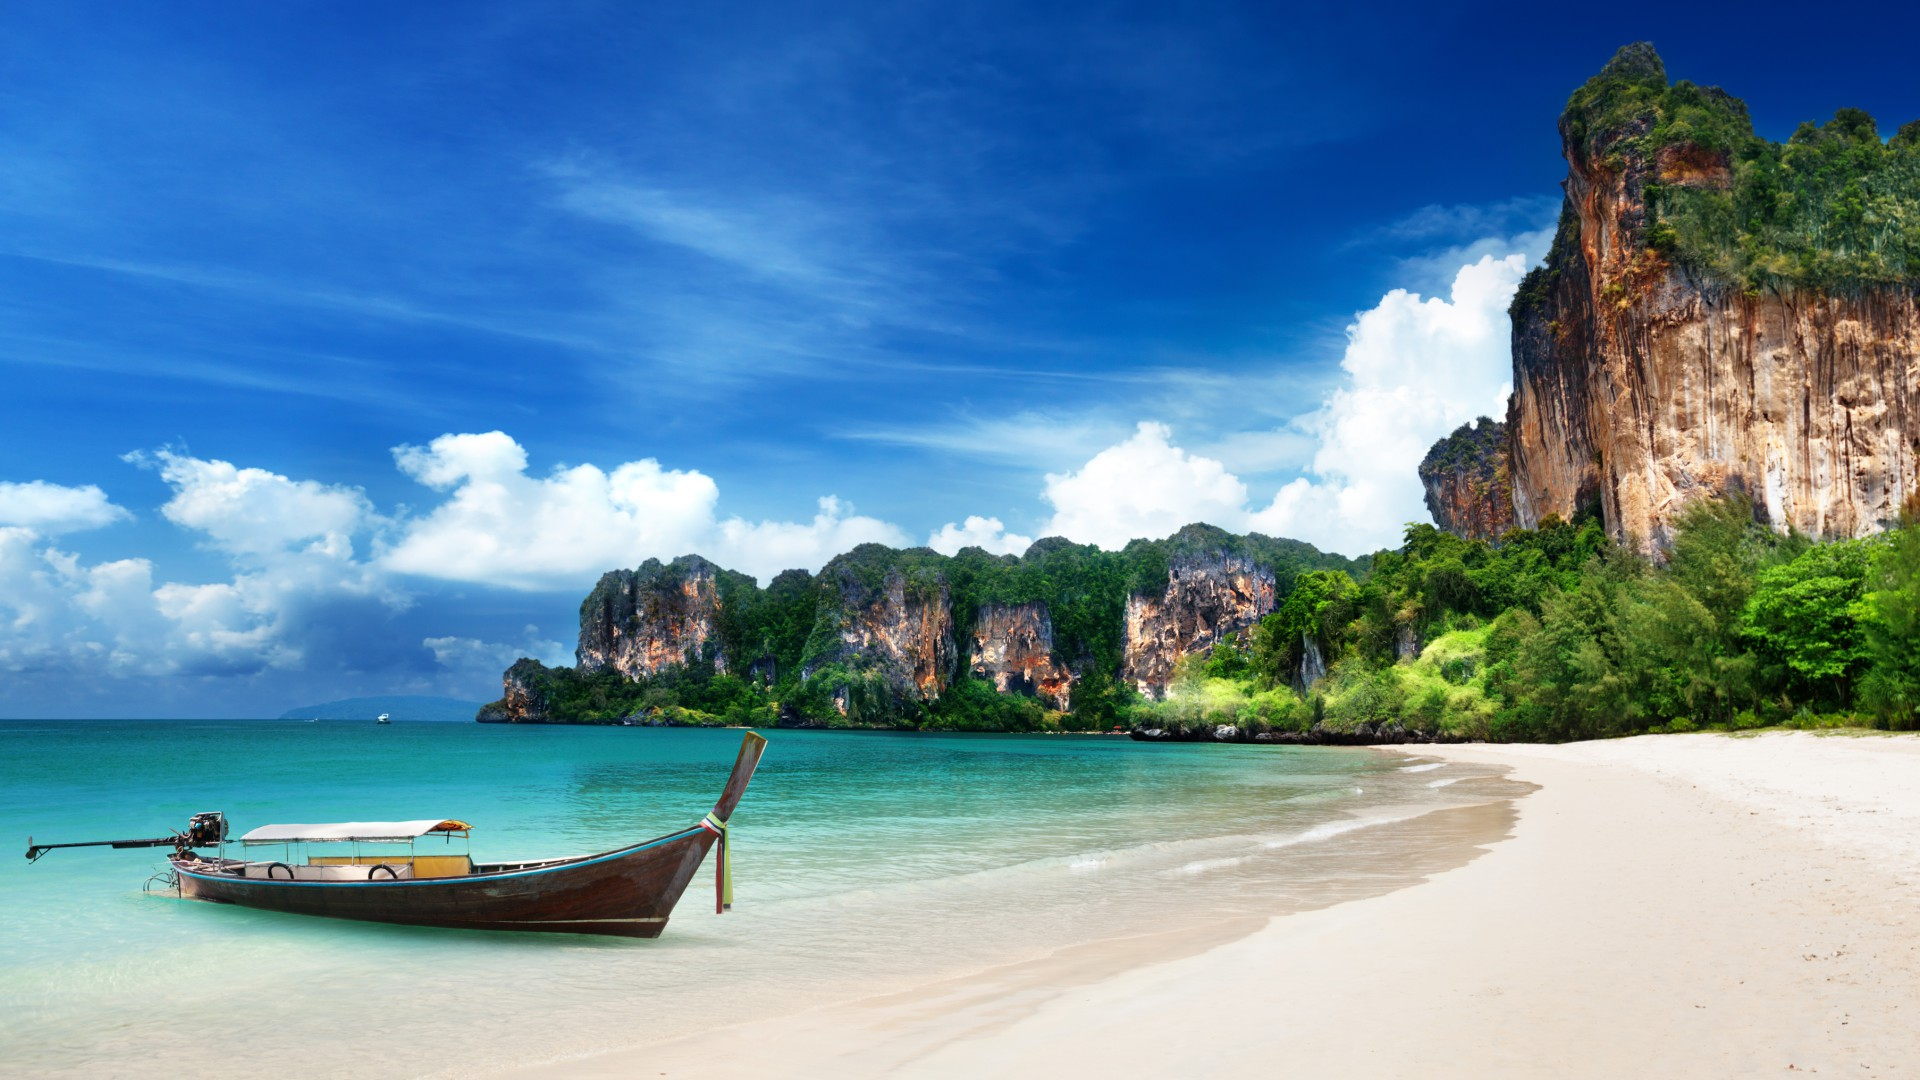 Krabi Beach, HD, 4k wallpaper, Thailand, Best Beaches in the World, tourism, travel, resort, vacation, sand, boat, sky, World's best diving sites (horizontal)